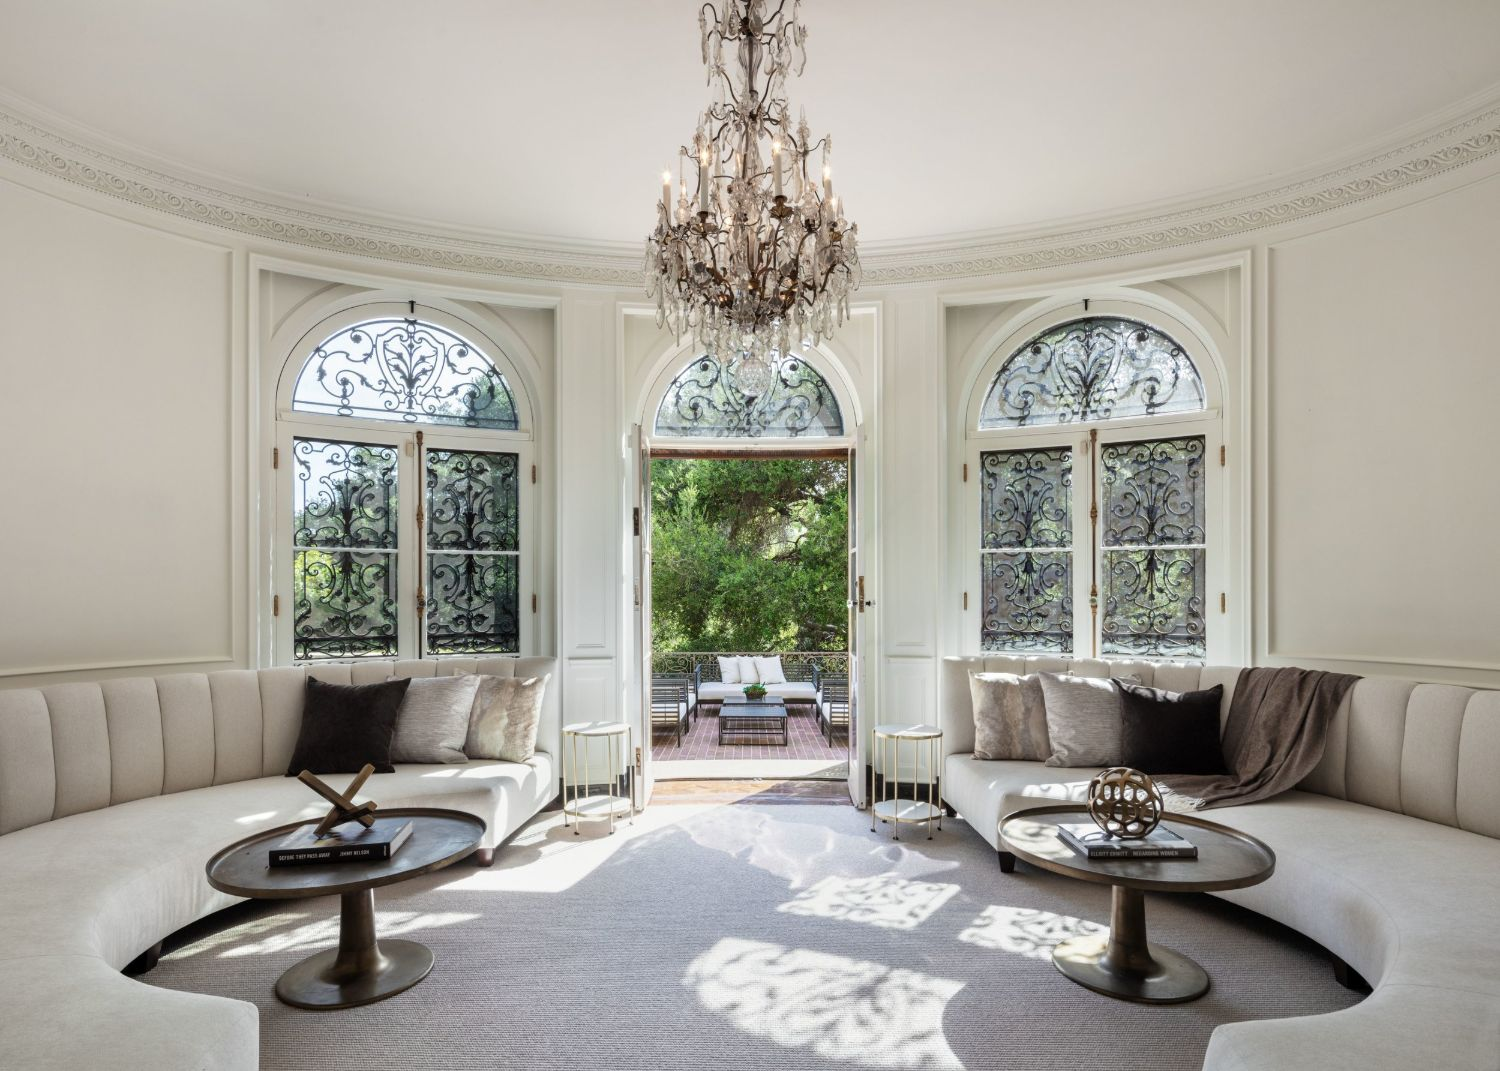 Inside the Hollywood iconic home 141 s Carolwood Dr LA sold